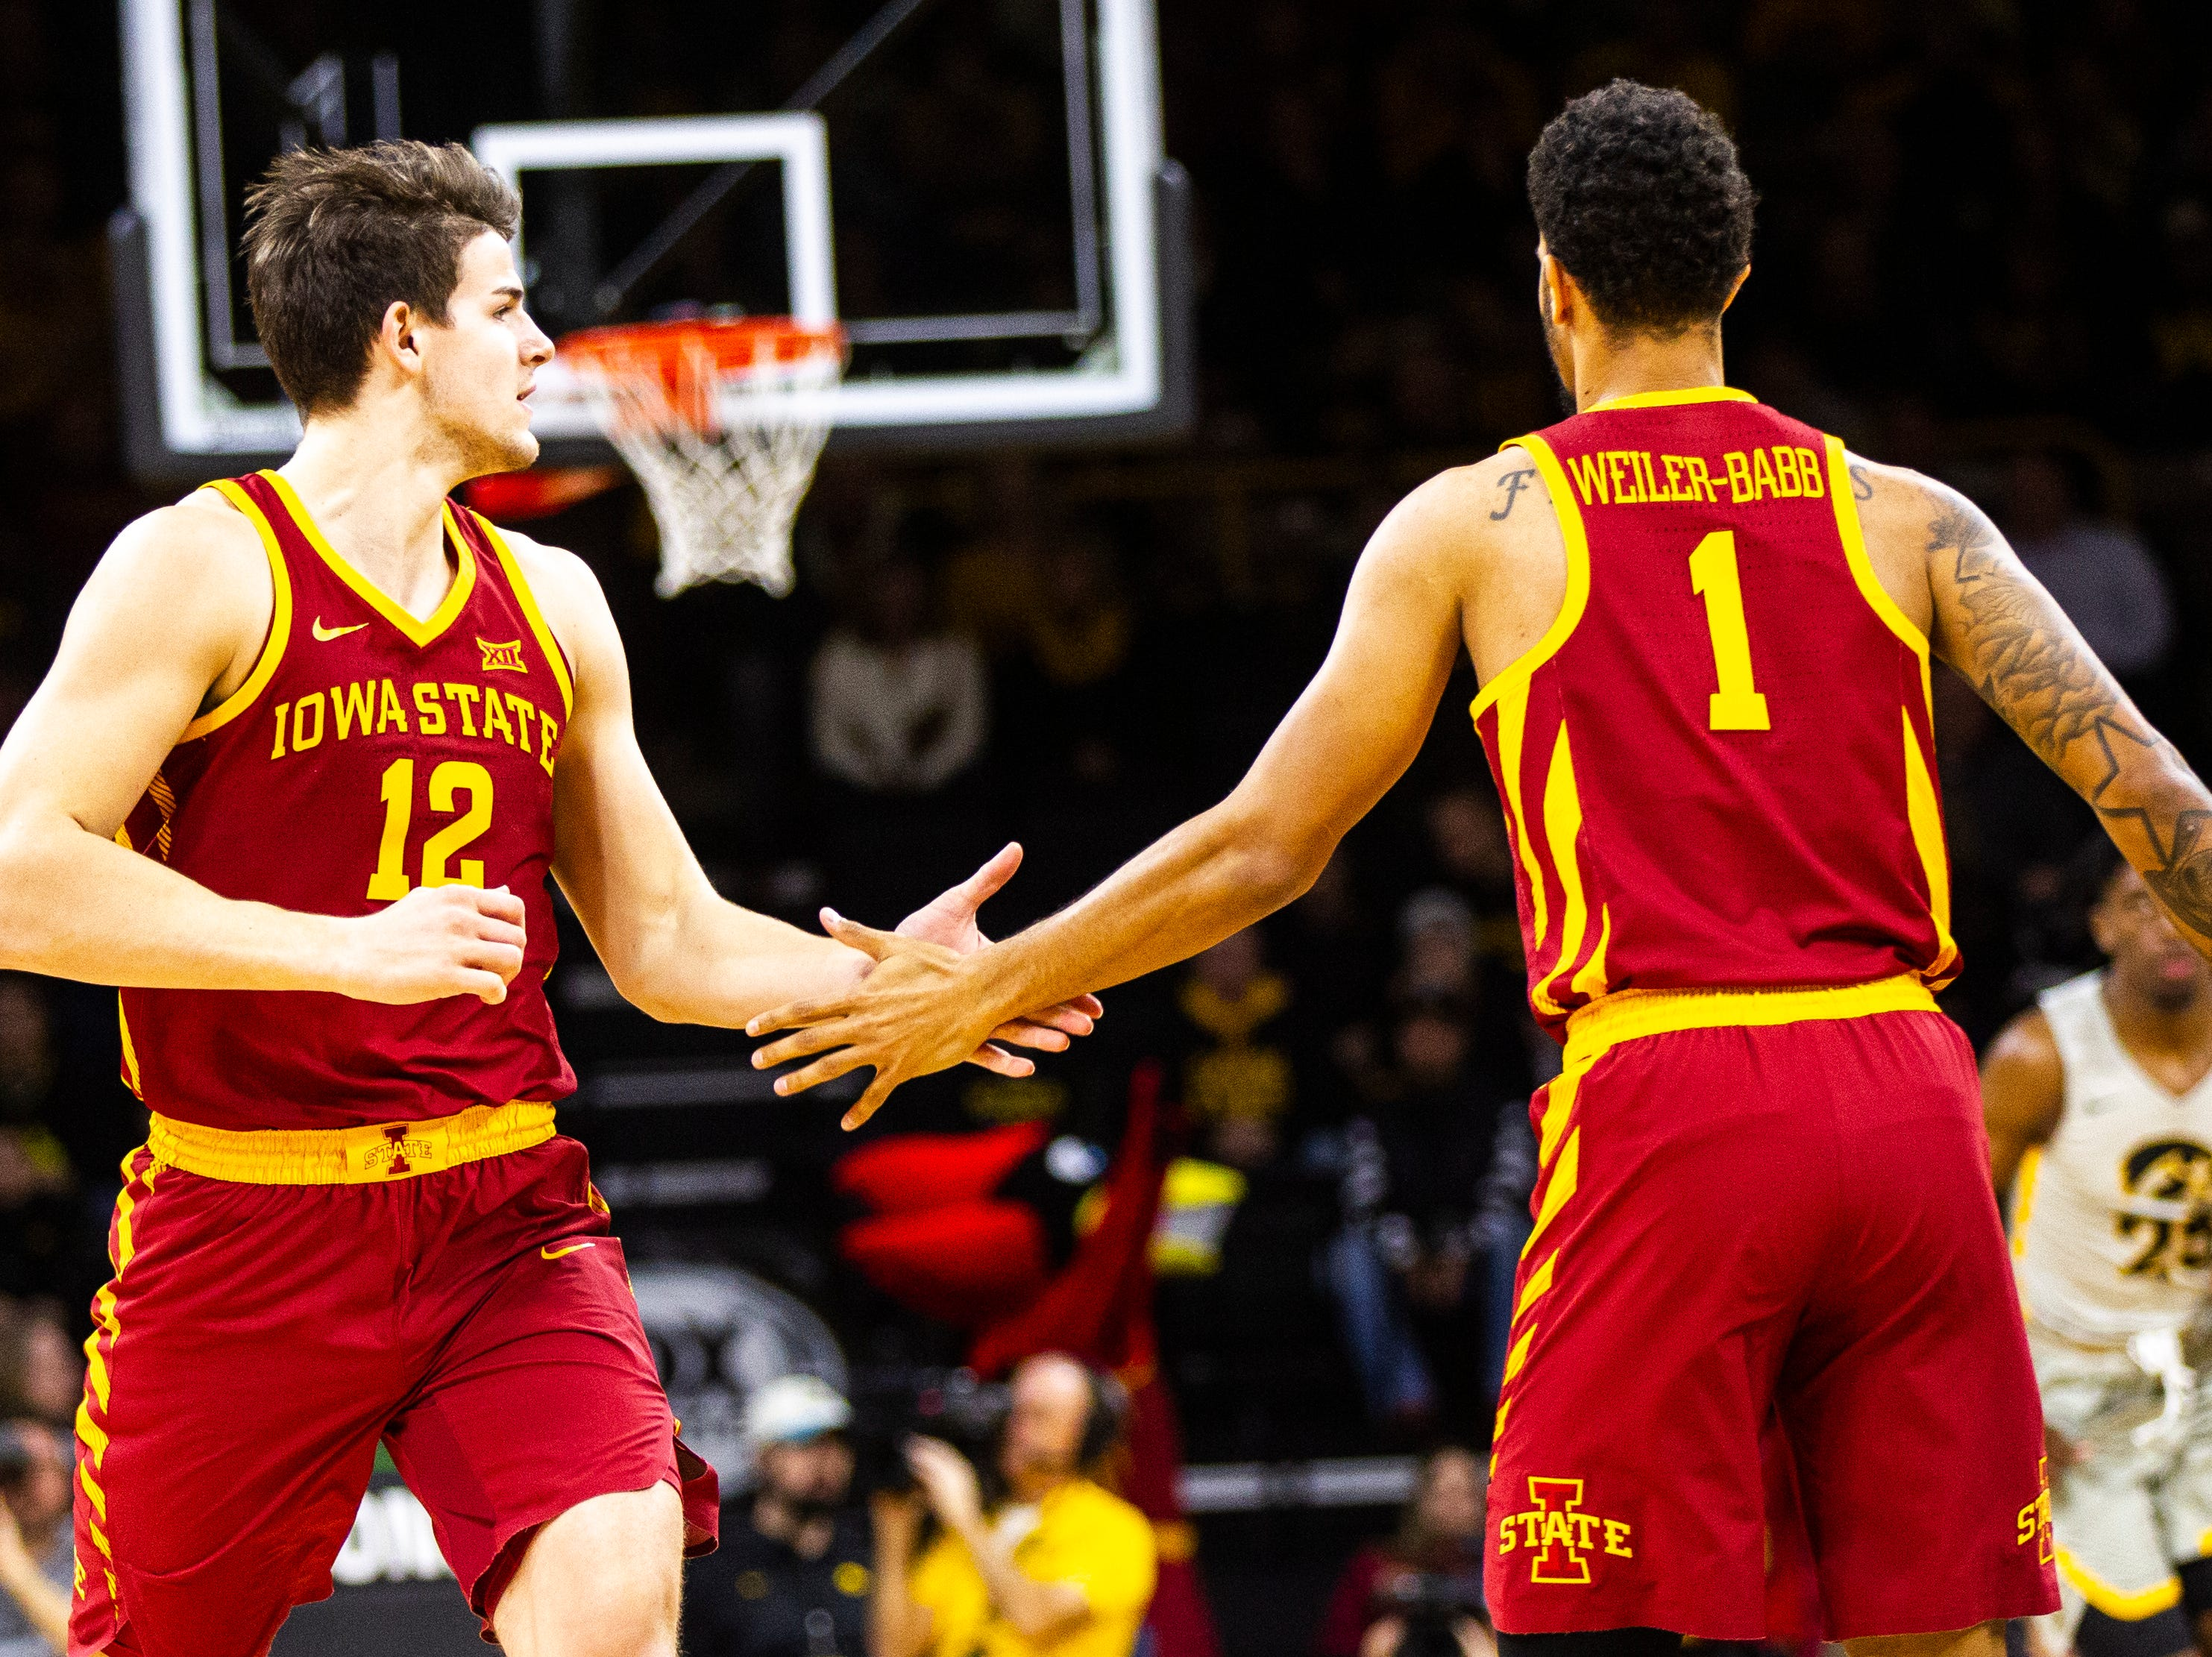 Iowa State forward Michael Jacobson (12) high-fives Iowa State guard Nick Weiler-Babb (1) during a NCAA Cy-Hawk series men's basketball game on Thursday, Dec. 6, 2018, at Carver-Hawkeye Arena in Iowa City.